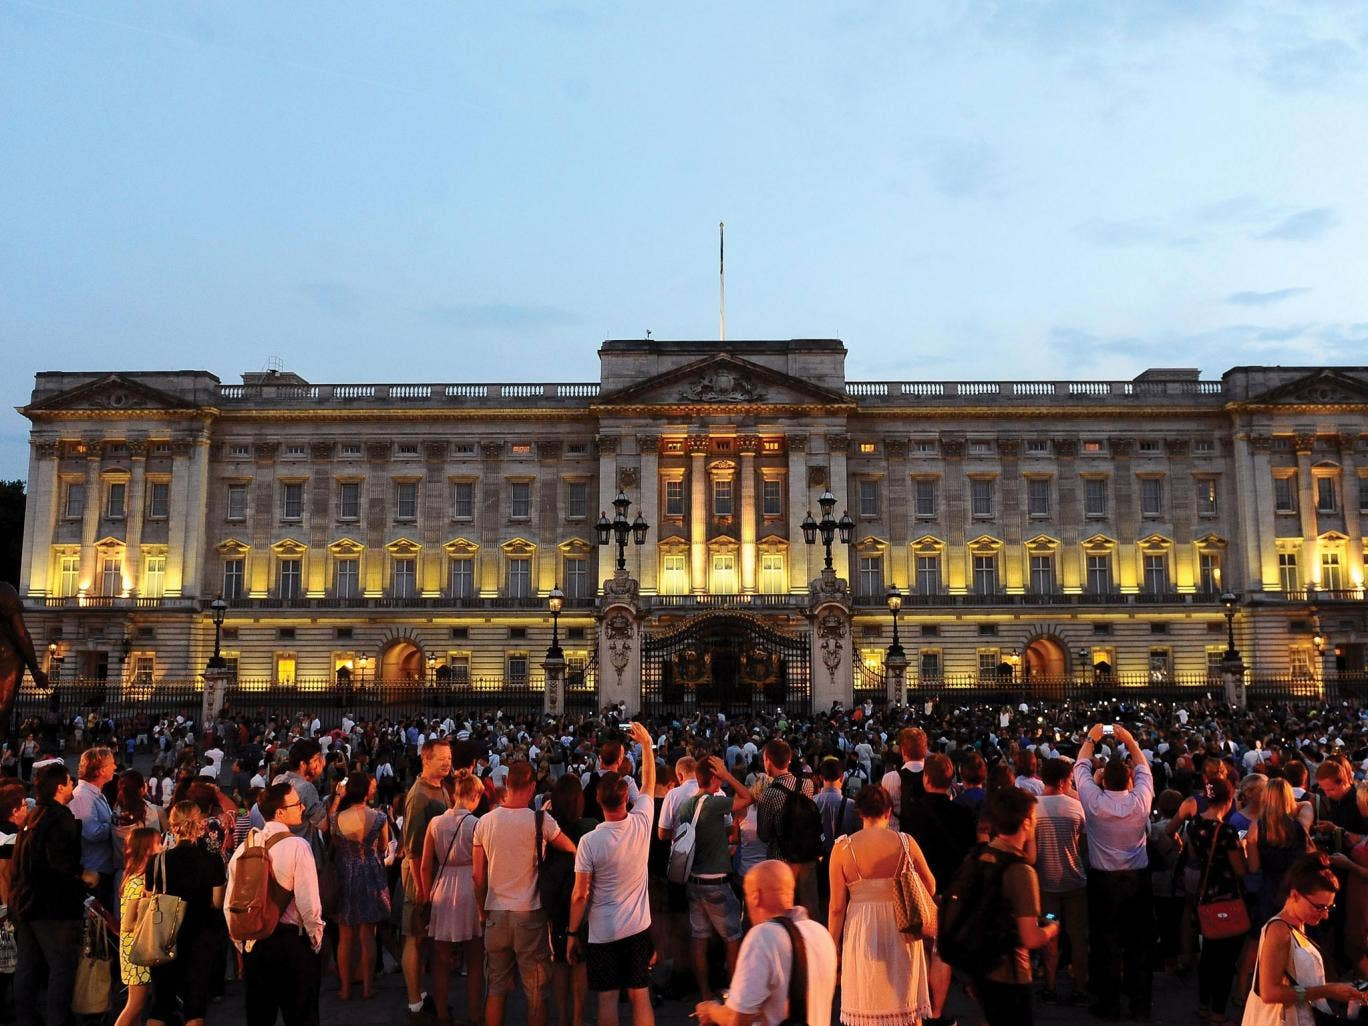 Crowds have gathered in front of Buckingham Palace, while others have taken to Twitter to send their good wishes